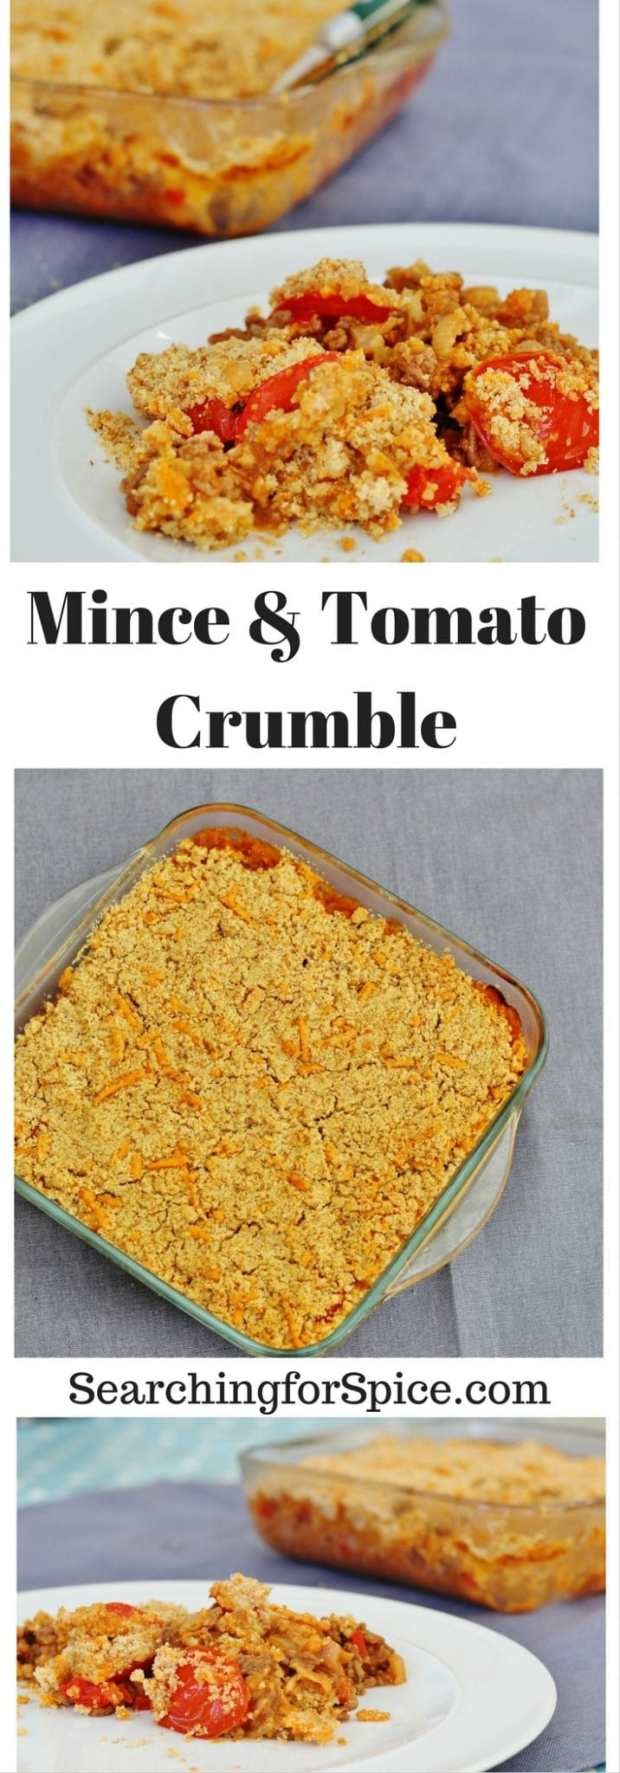 Mince and Tomato Crumble - Searching for Spice